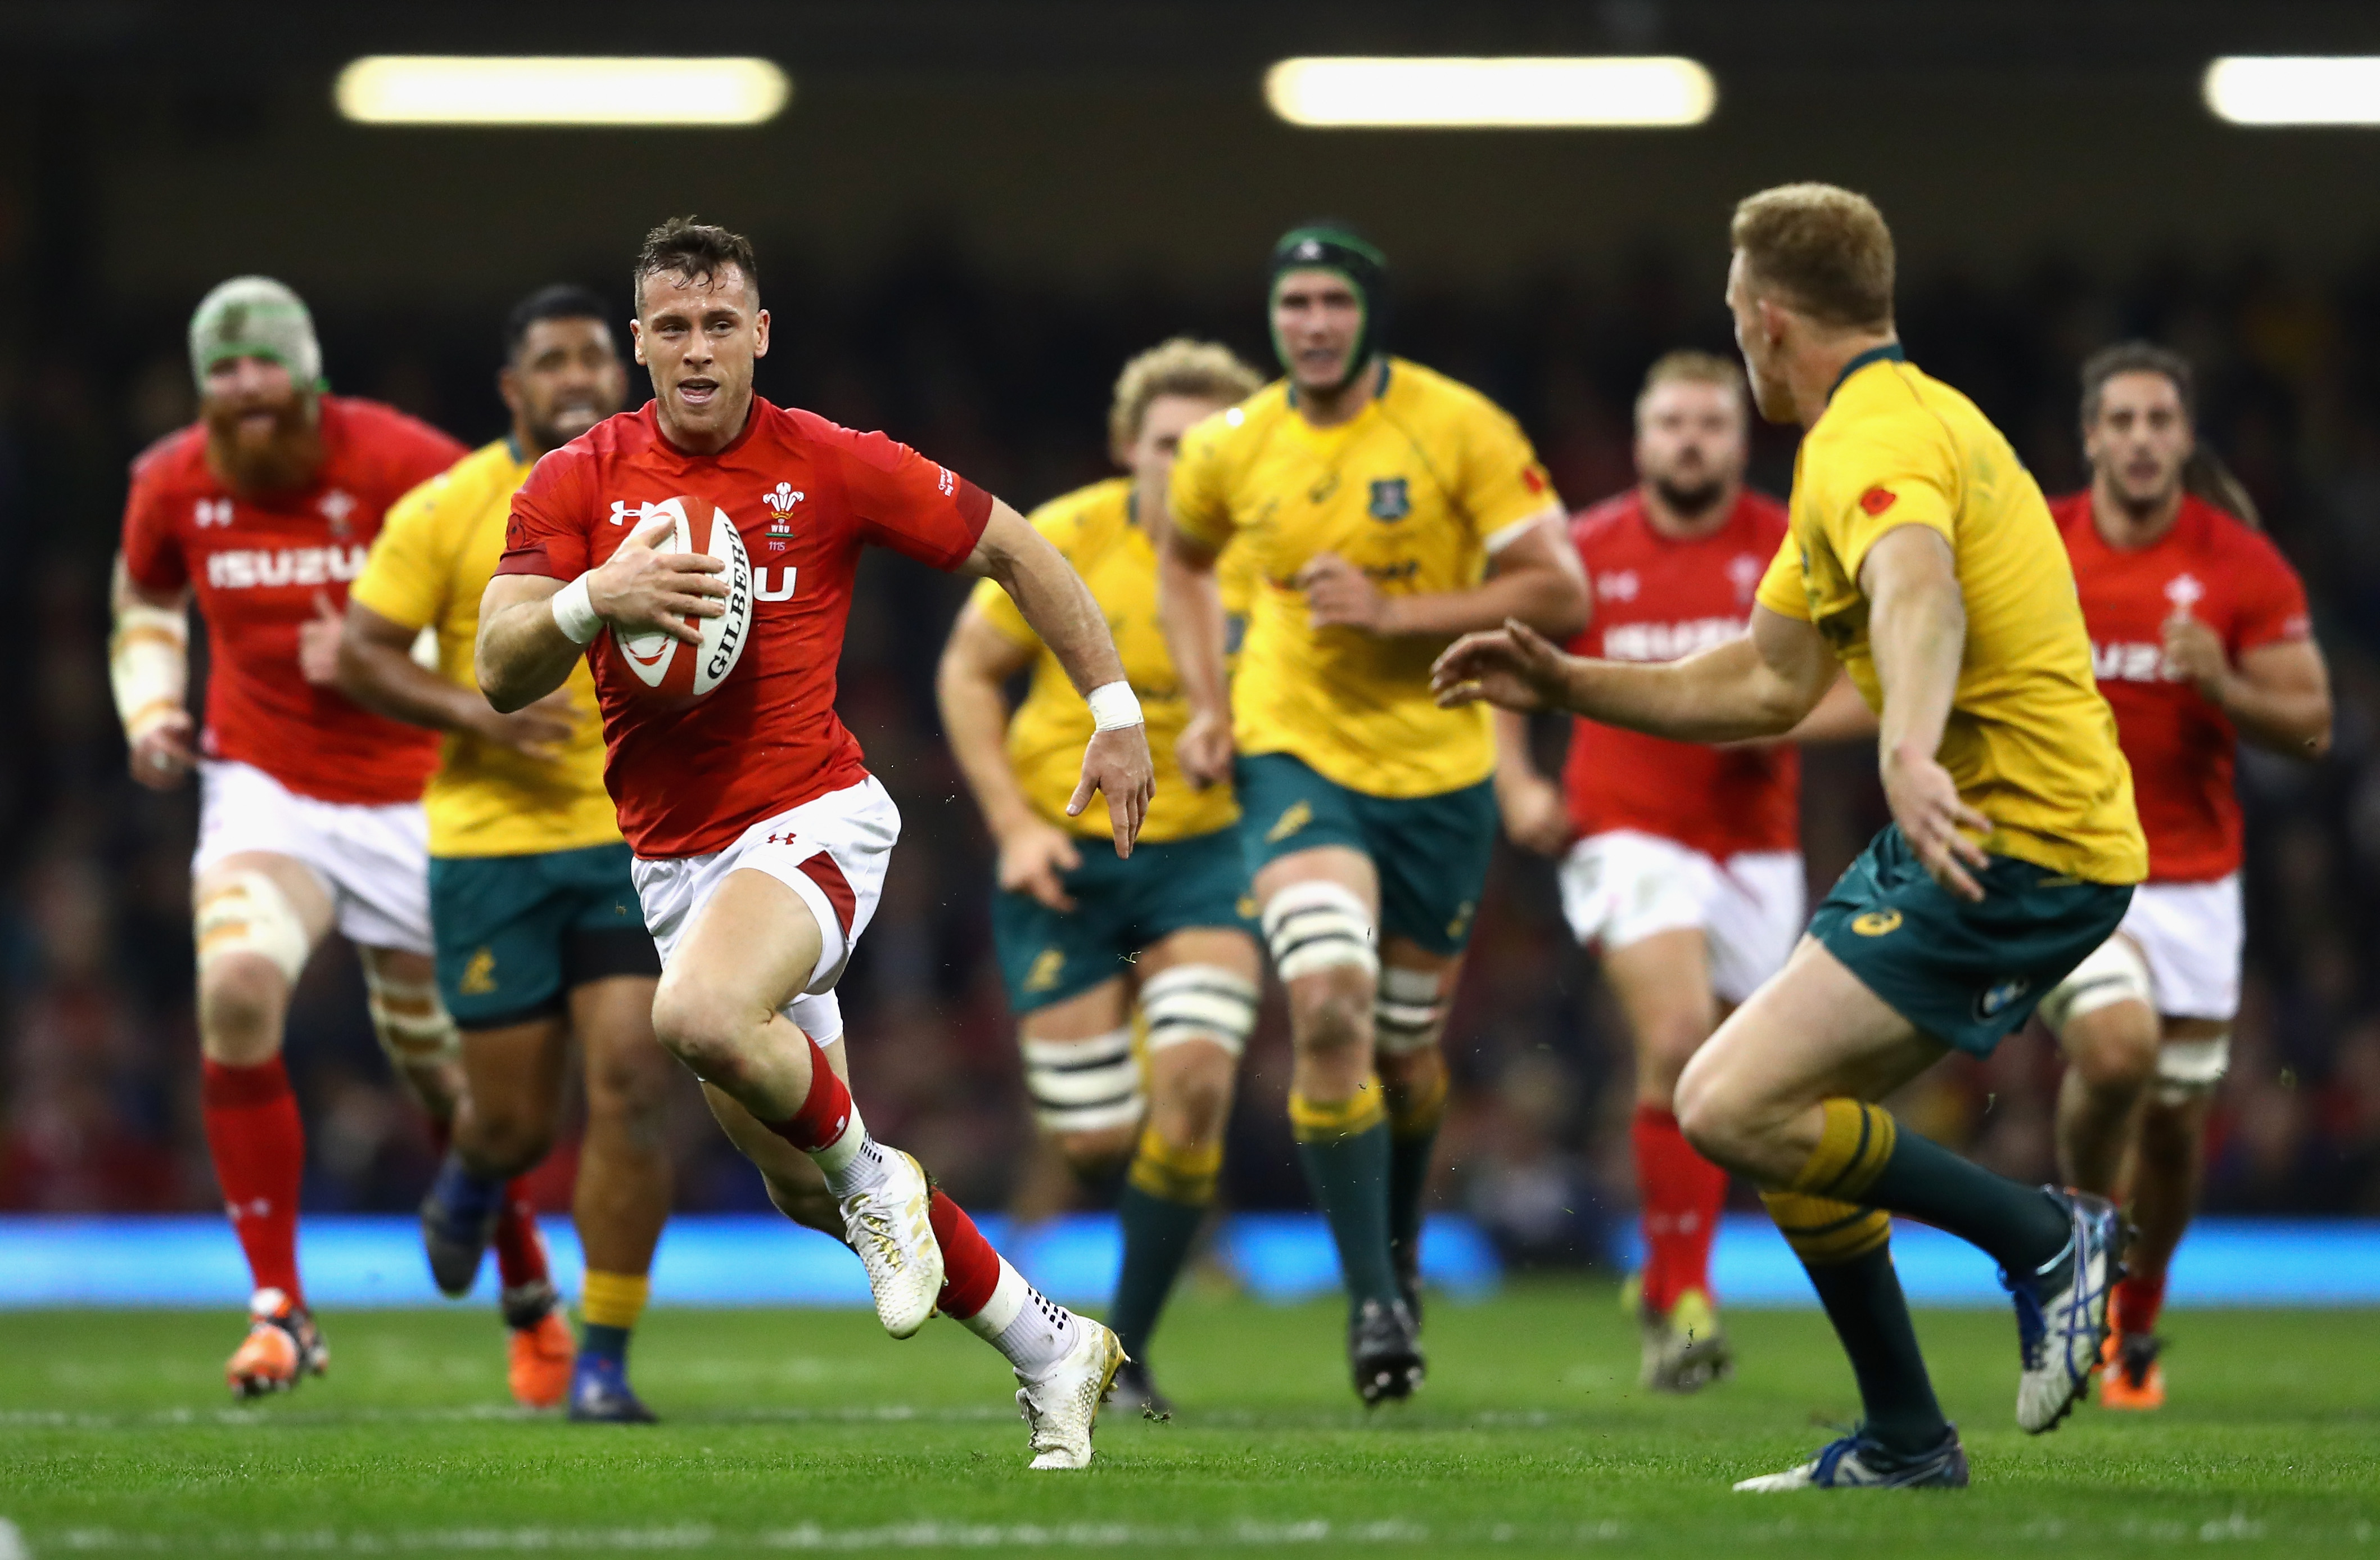 Wales v Australia: Five things we learnt - Rugby World